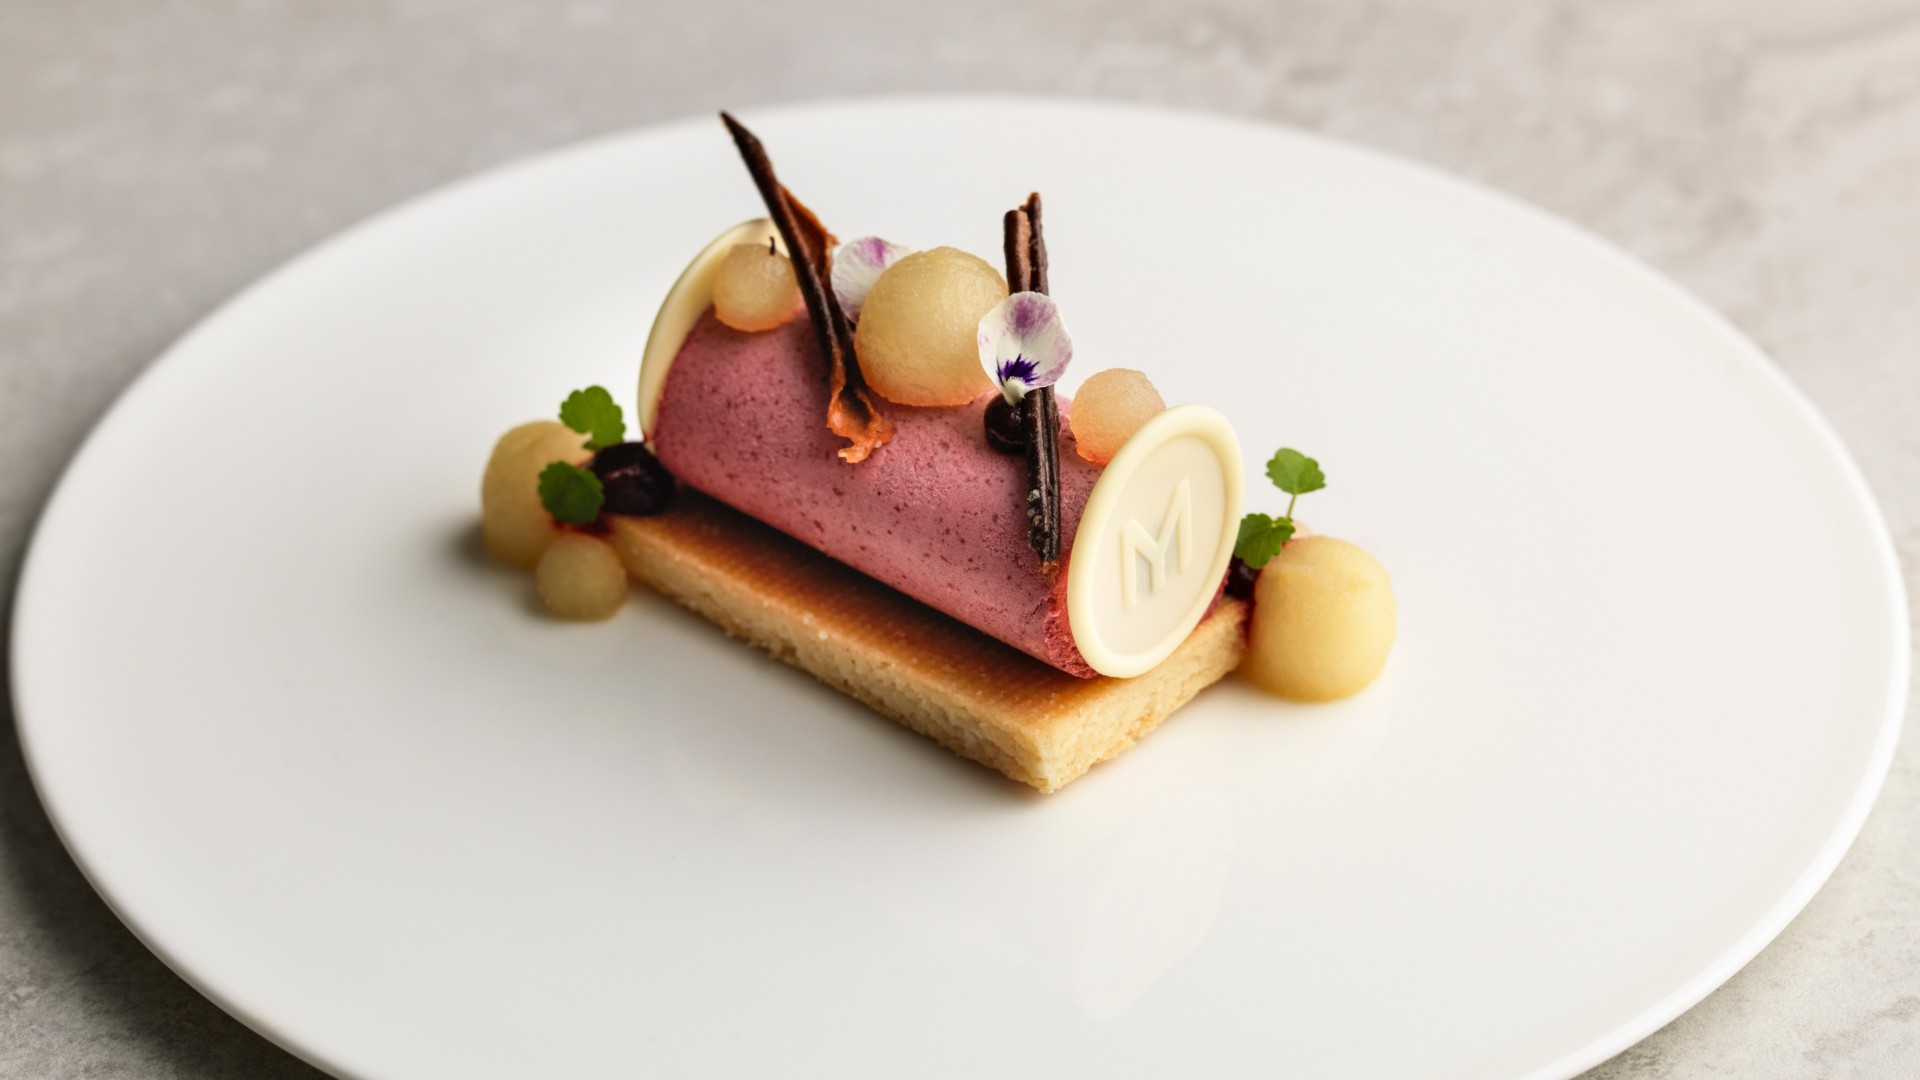 Blackcurrant parfait